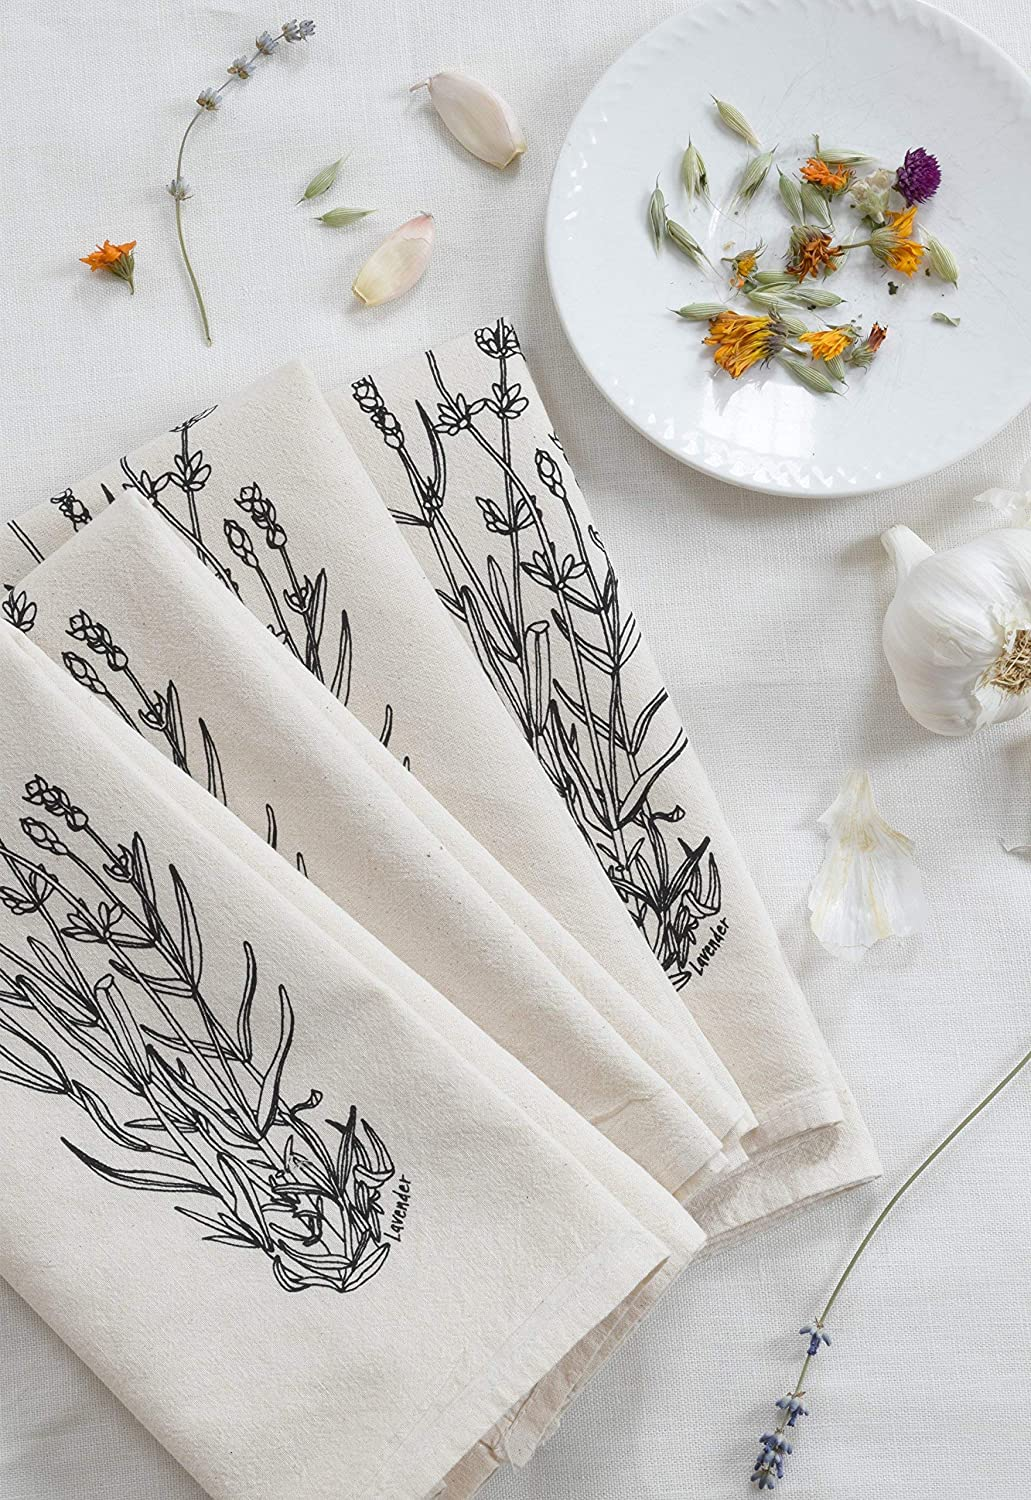 Set of 4 Cloth Napkins - Organic Cotton - Lavender Print in Black